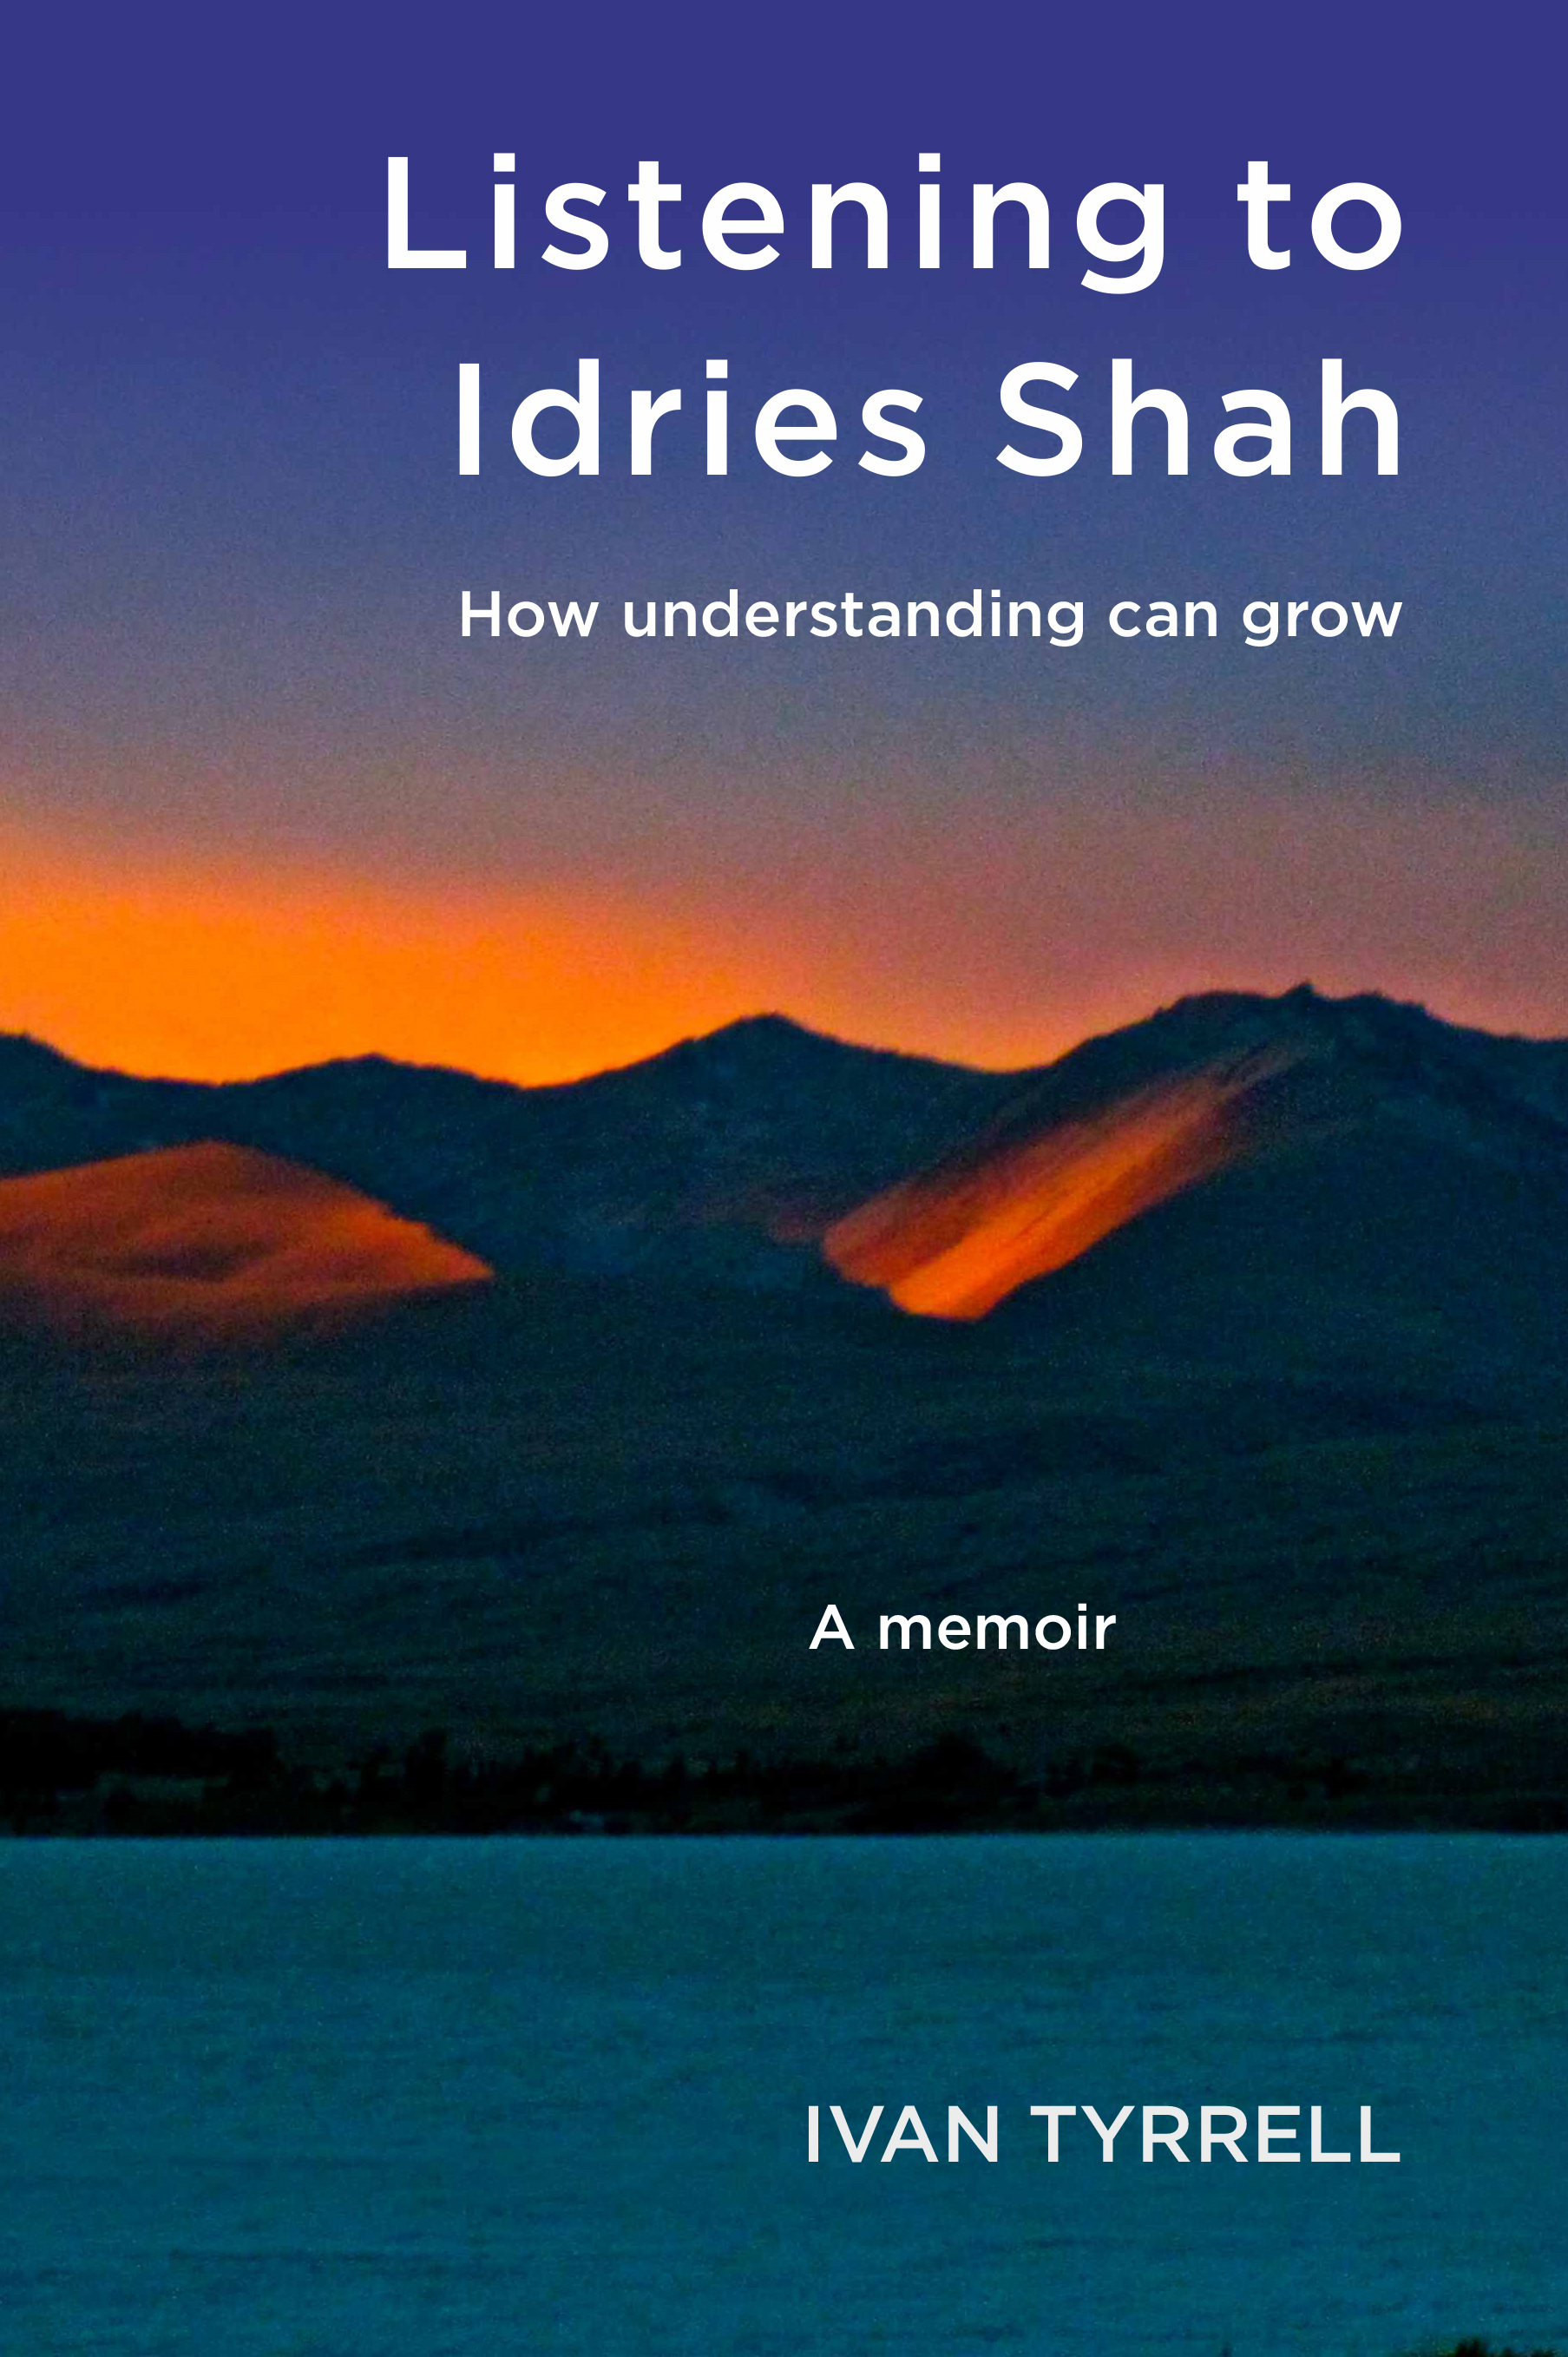 Listening to Idries Shah: How understanding can grow